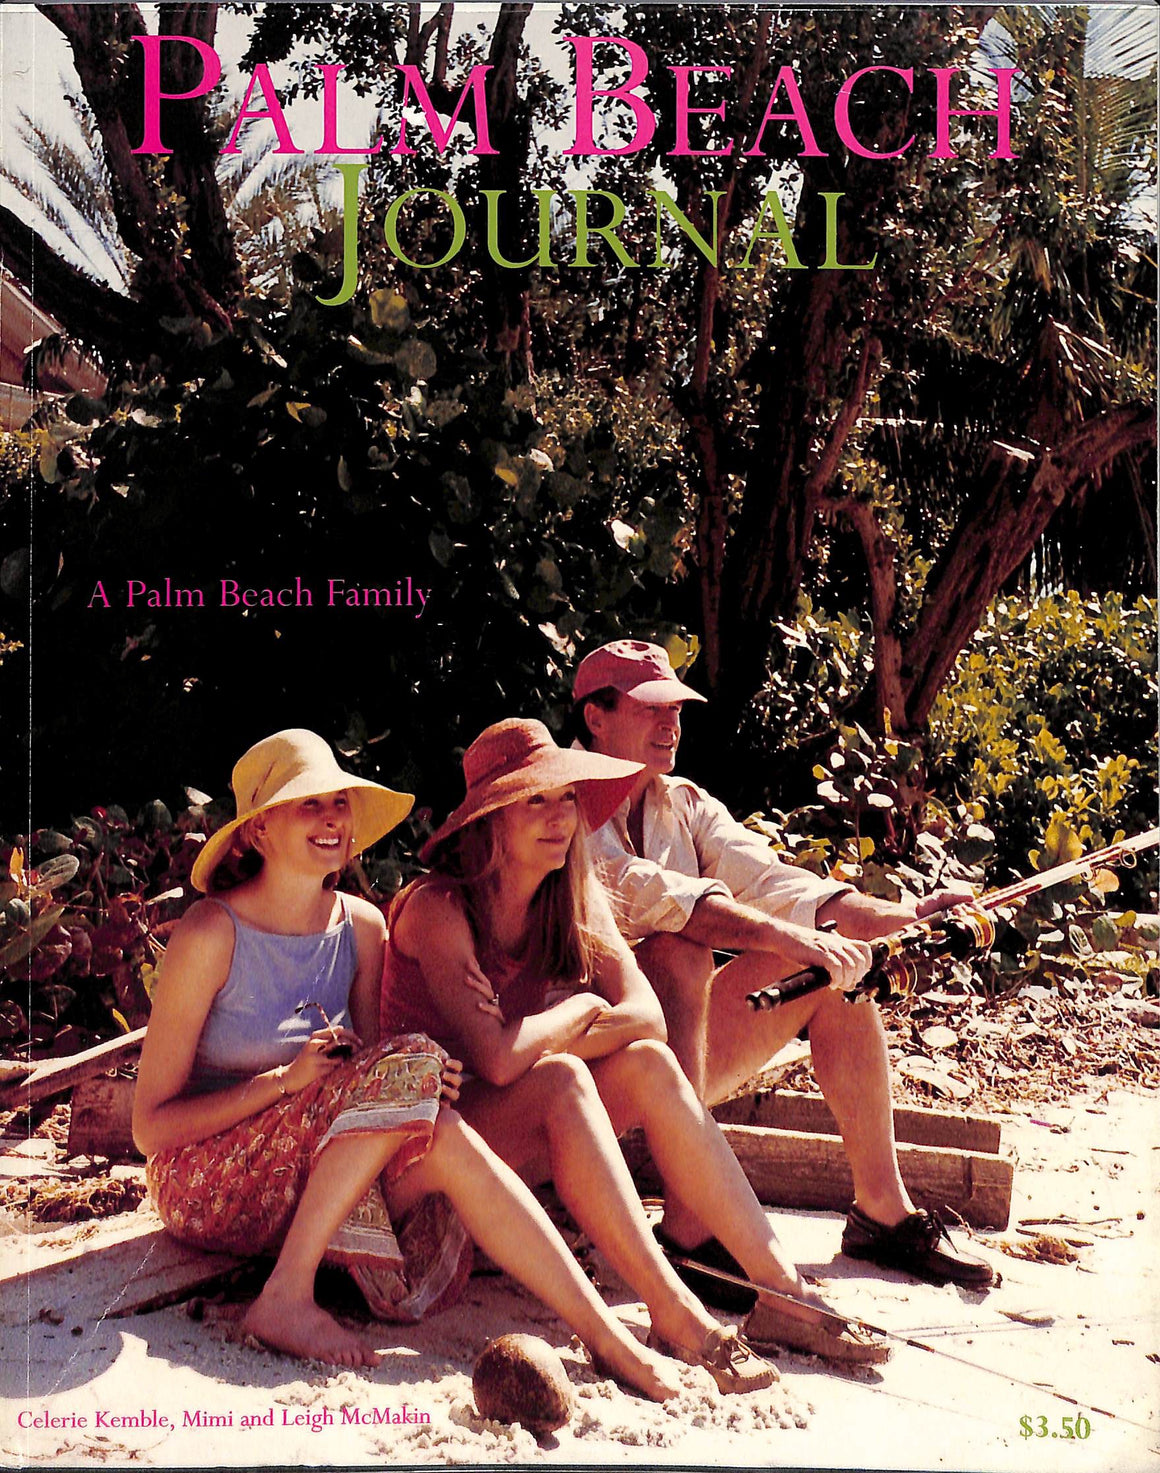 """Palm Beach Journal: Winter 1999-2000 Issue"""